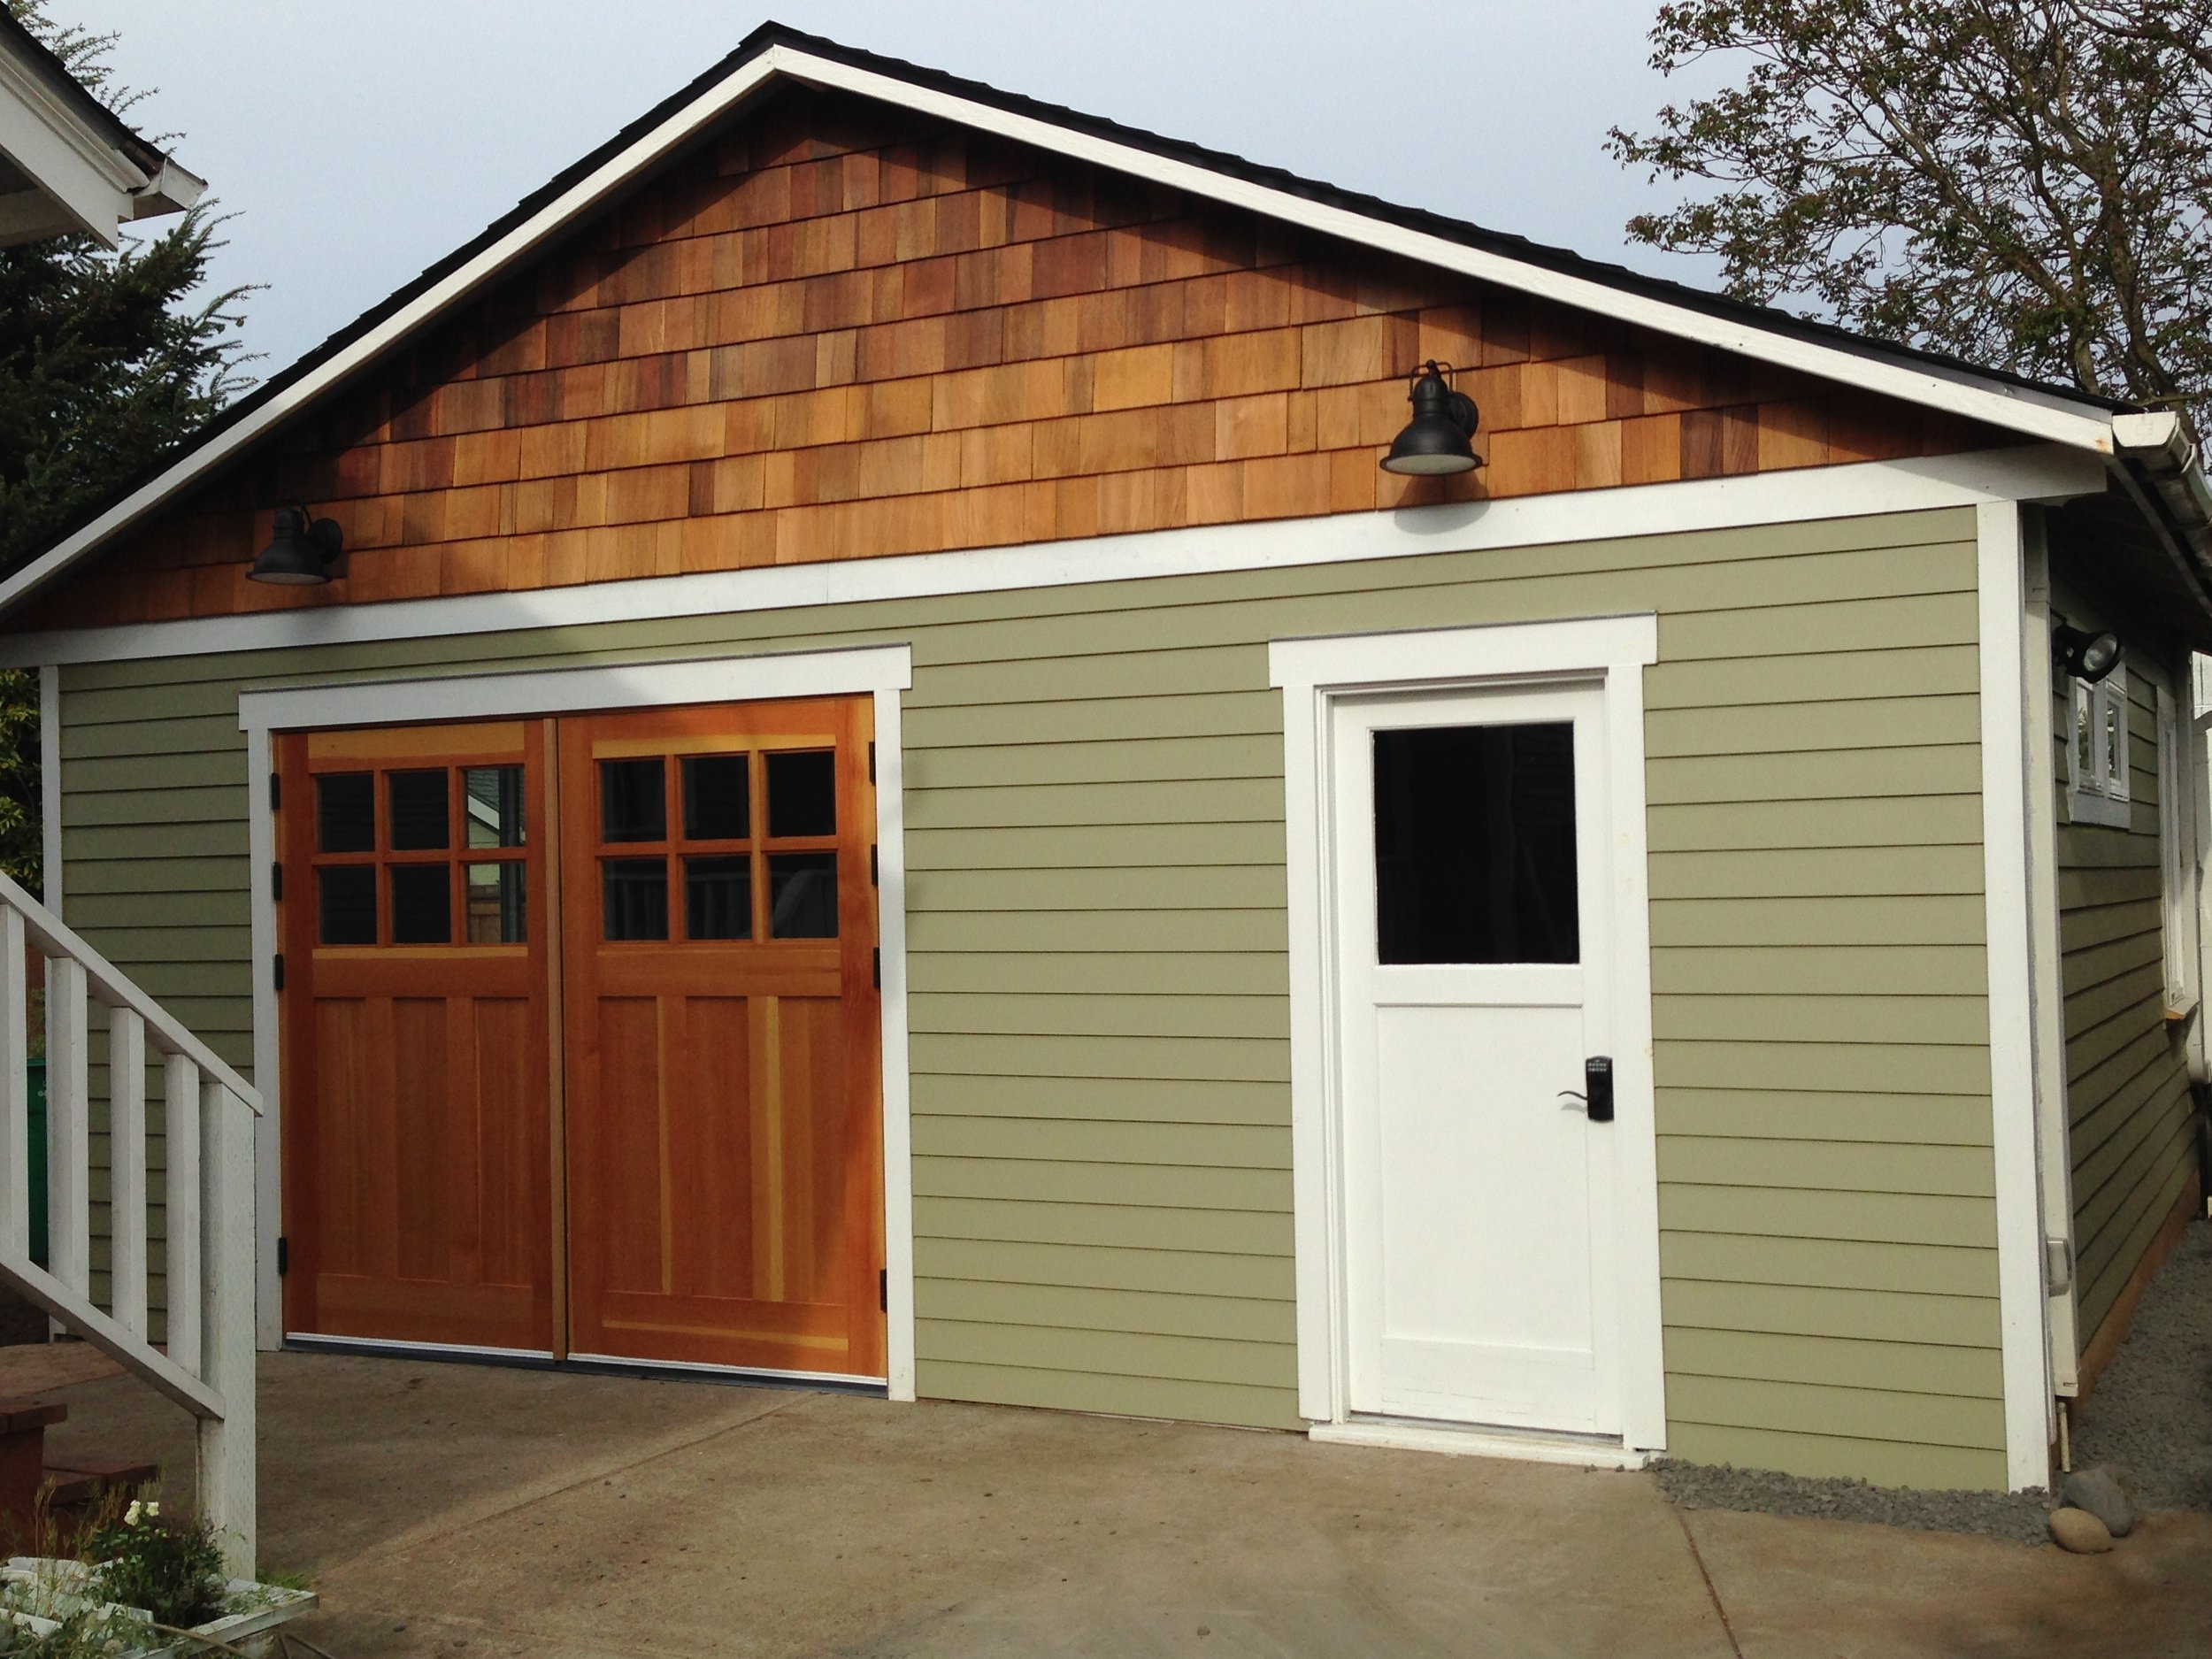 How To Save Money With A Garage Conversion Adu Building An Adu